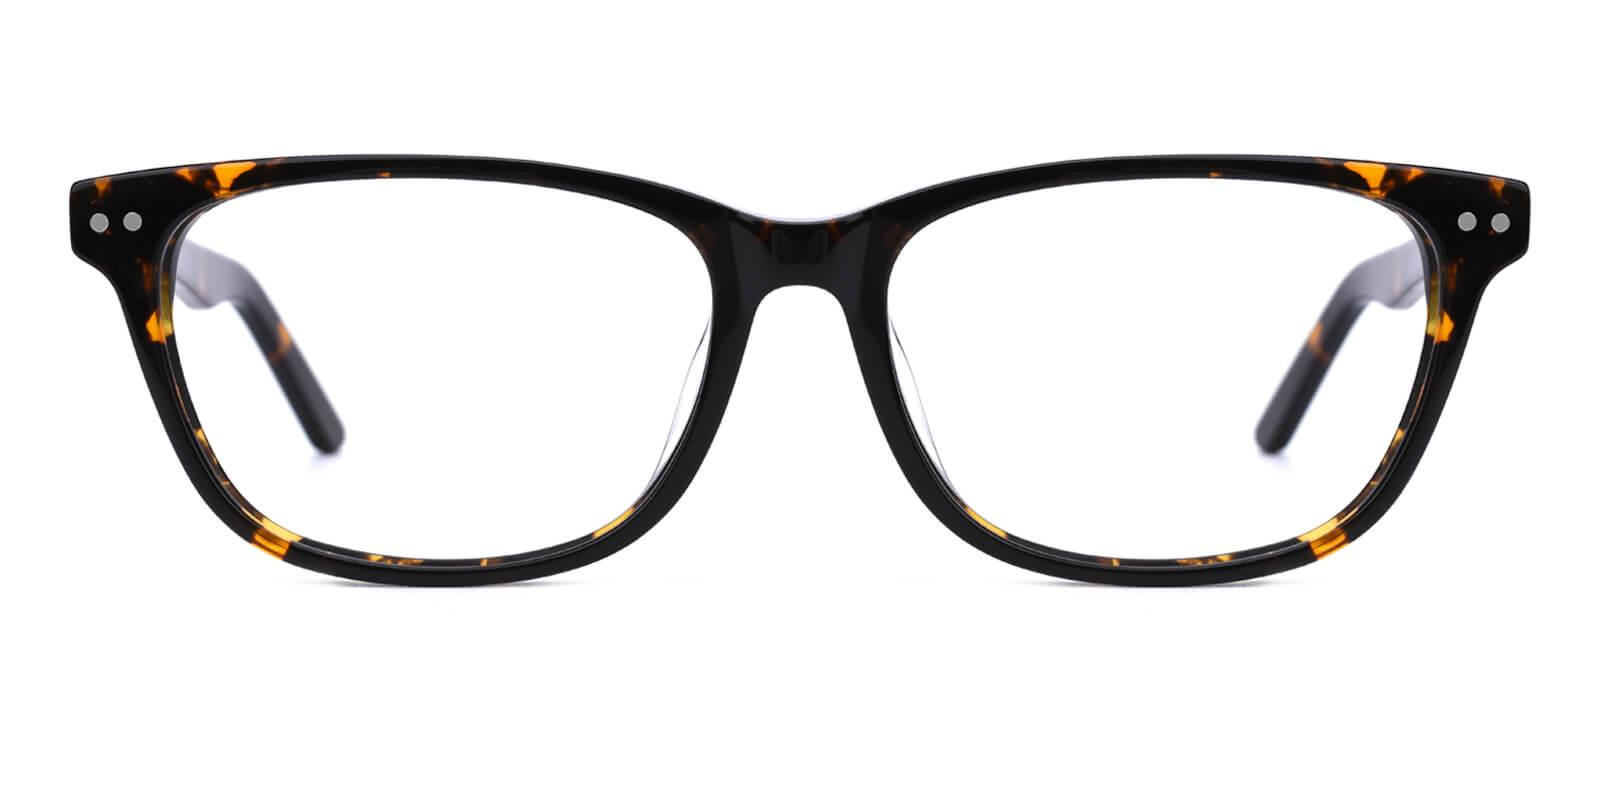 Prologue-Tortoise-Rectangle-Acetate-Eyeglasses-detail